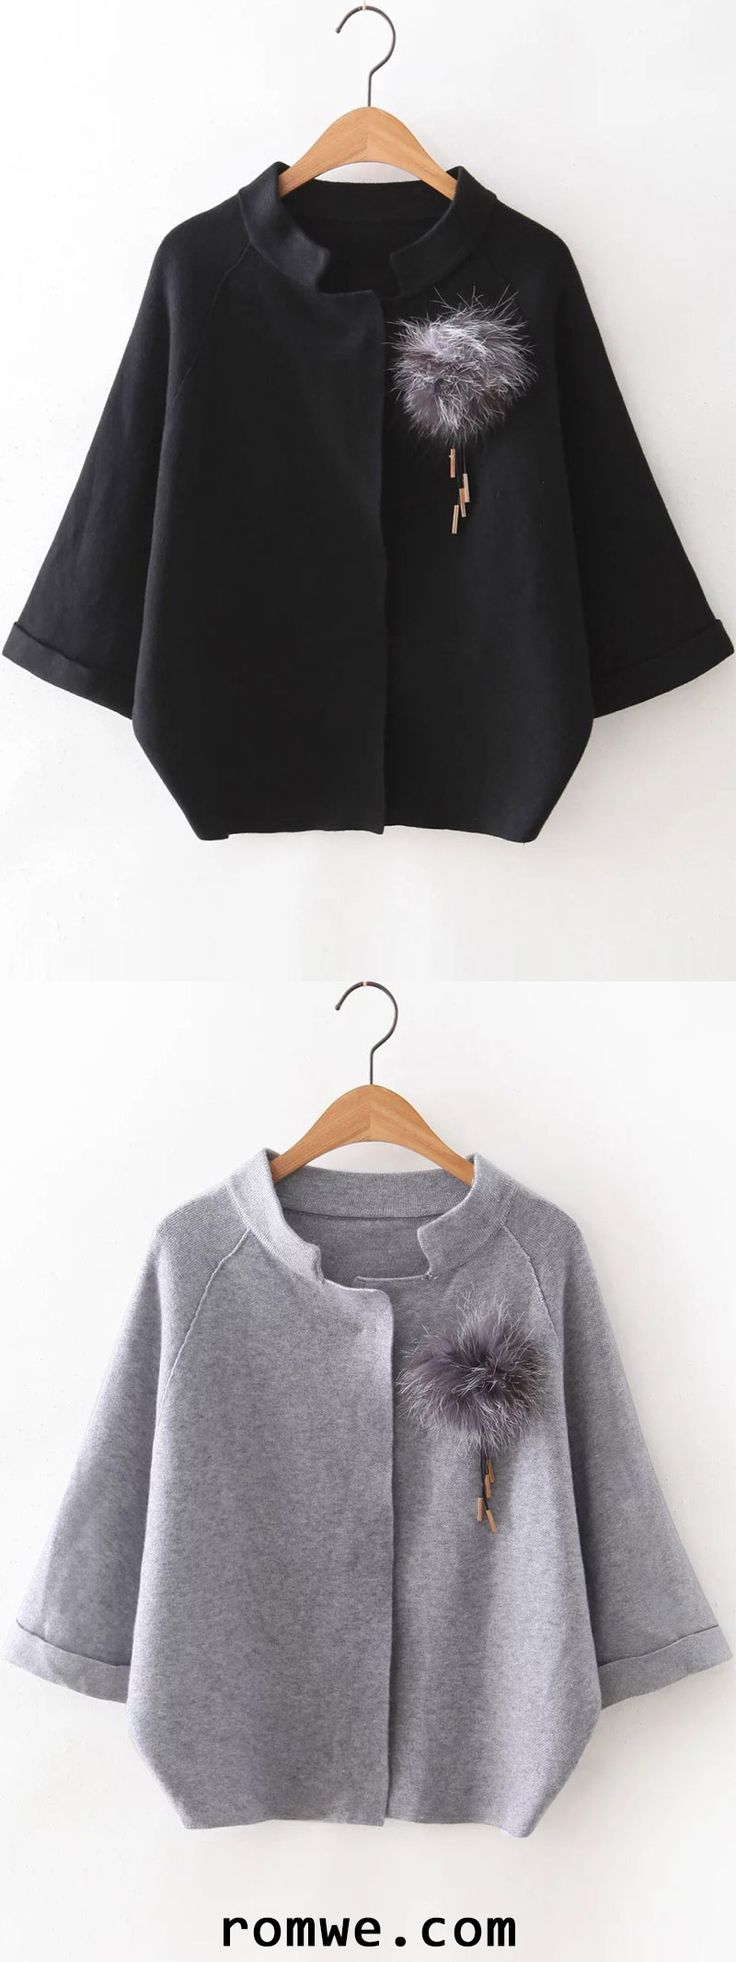 Black Raglan Sleeve Sweater Coat With Brooch -romwe.com